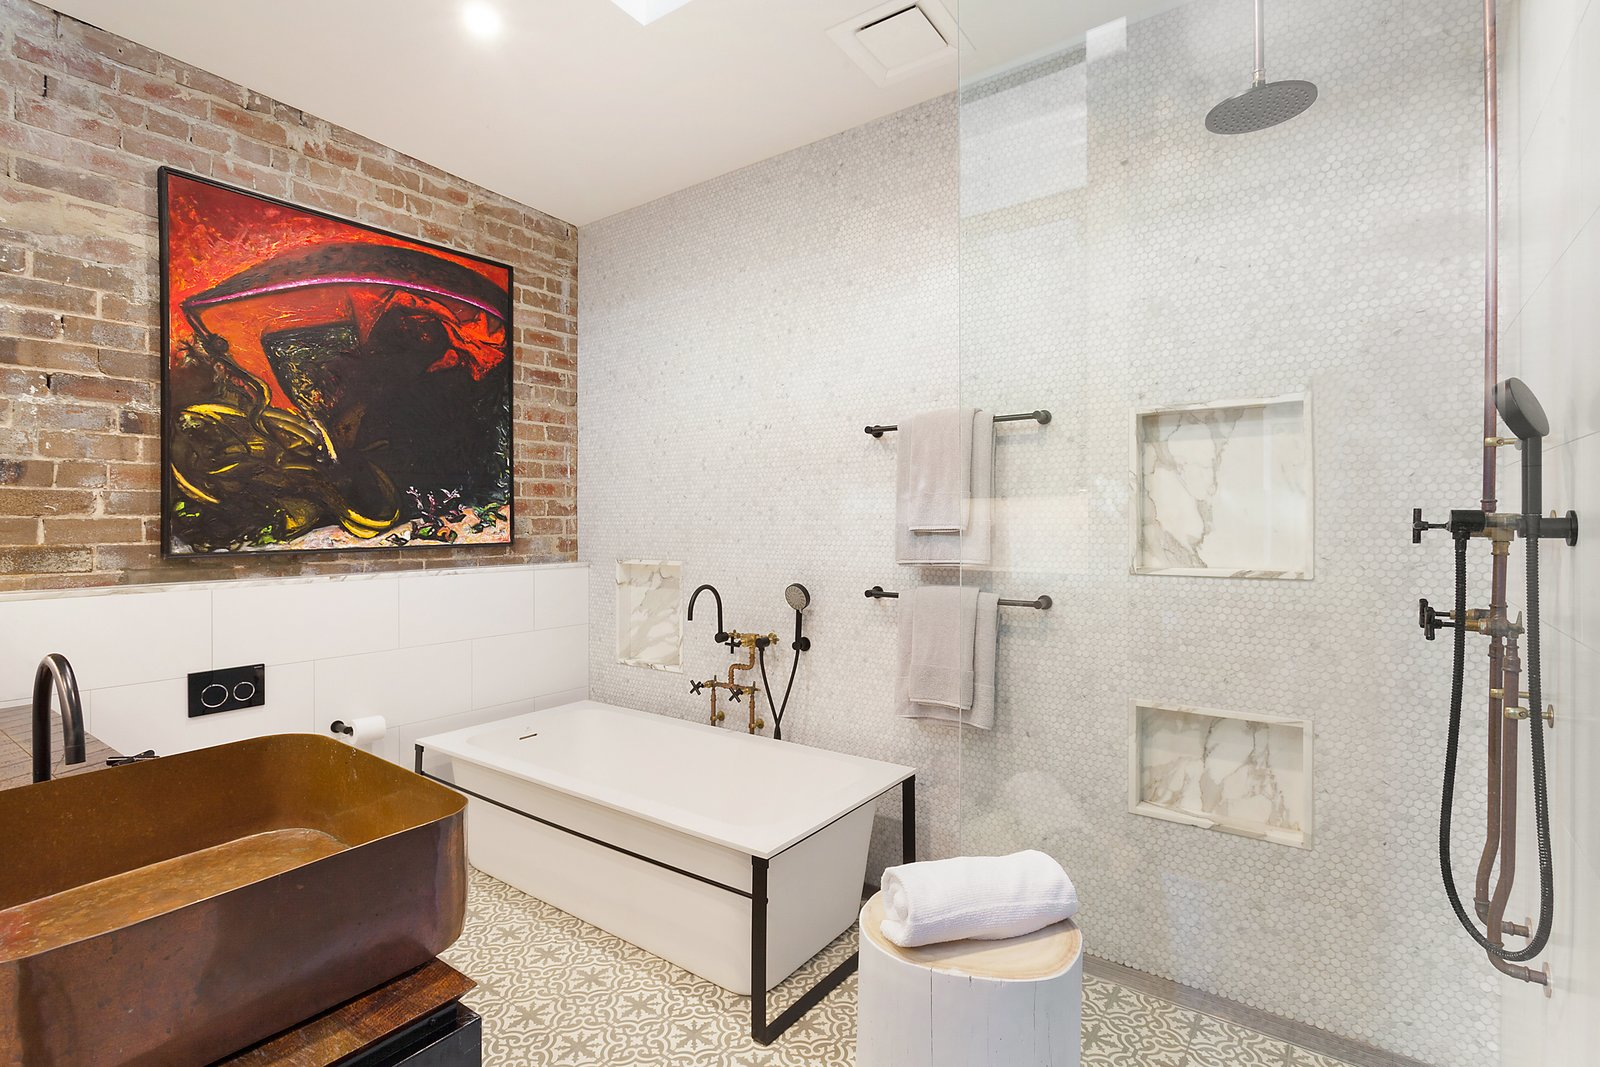 Bath, Open, Ceiling, Freestanding, Wood, Vessel, and Mosaic Tile Copper, timber and marble accents add a luxurious touch to the bathrooms.  Best Bath Mosaic Tile Ceiling Photos from The Glowing Converted Warehouse of Painter Fred Cress Is Open For Bids